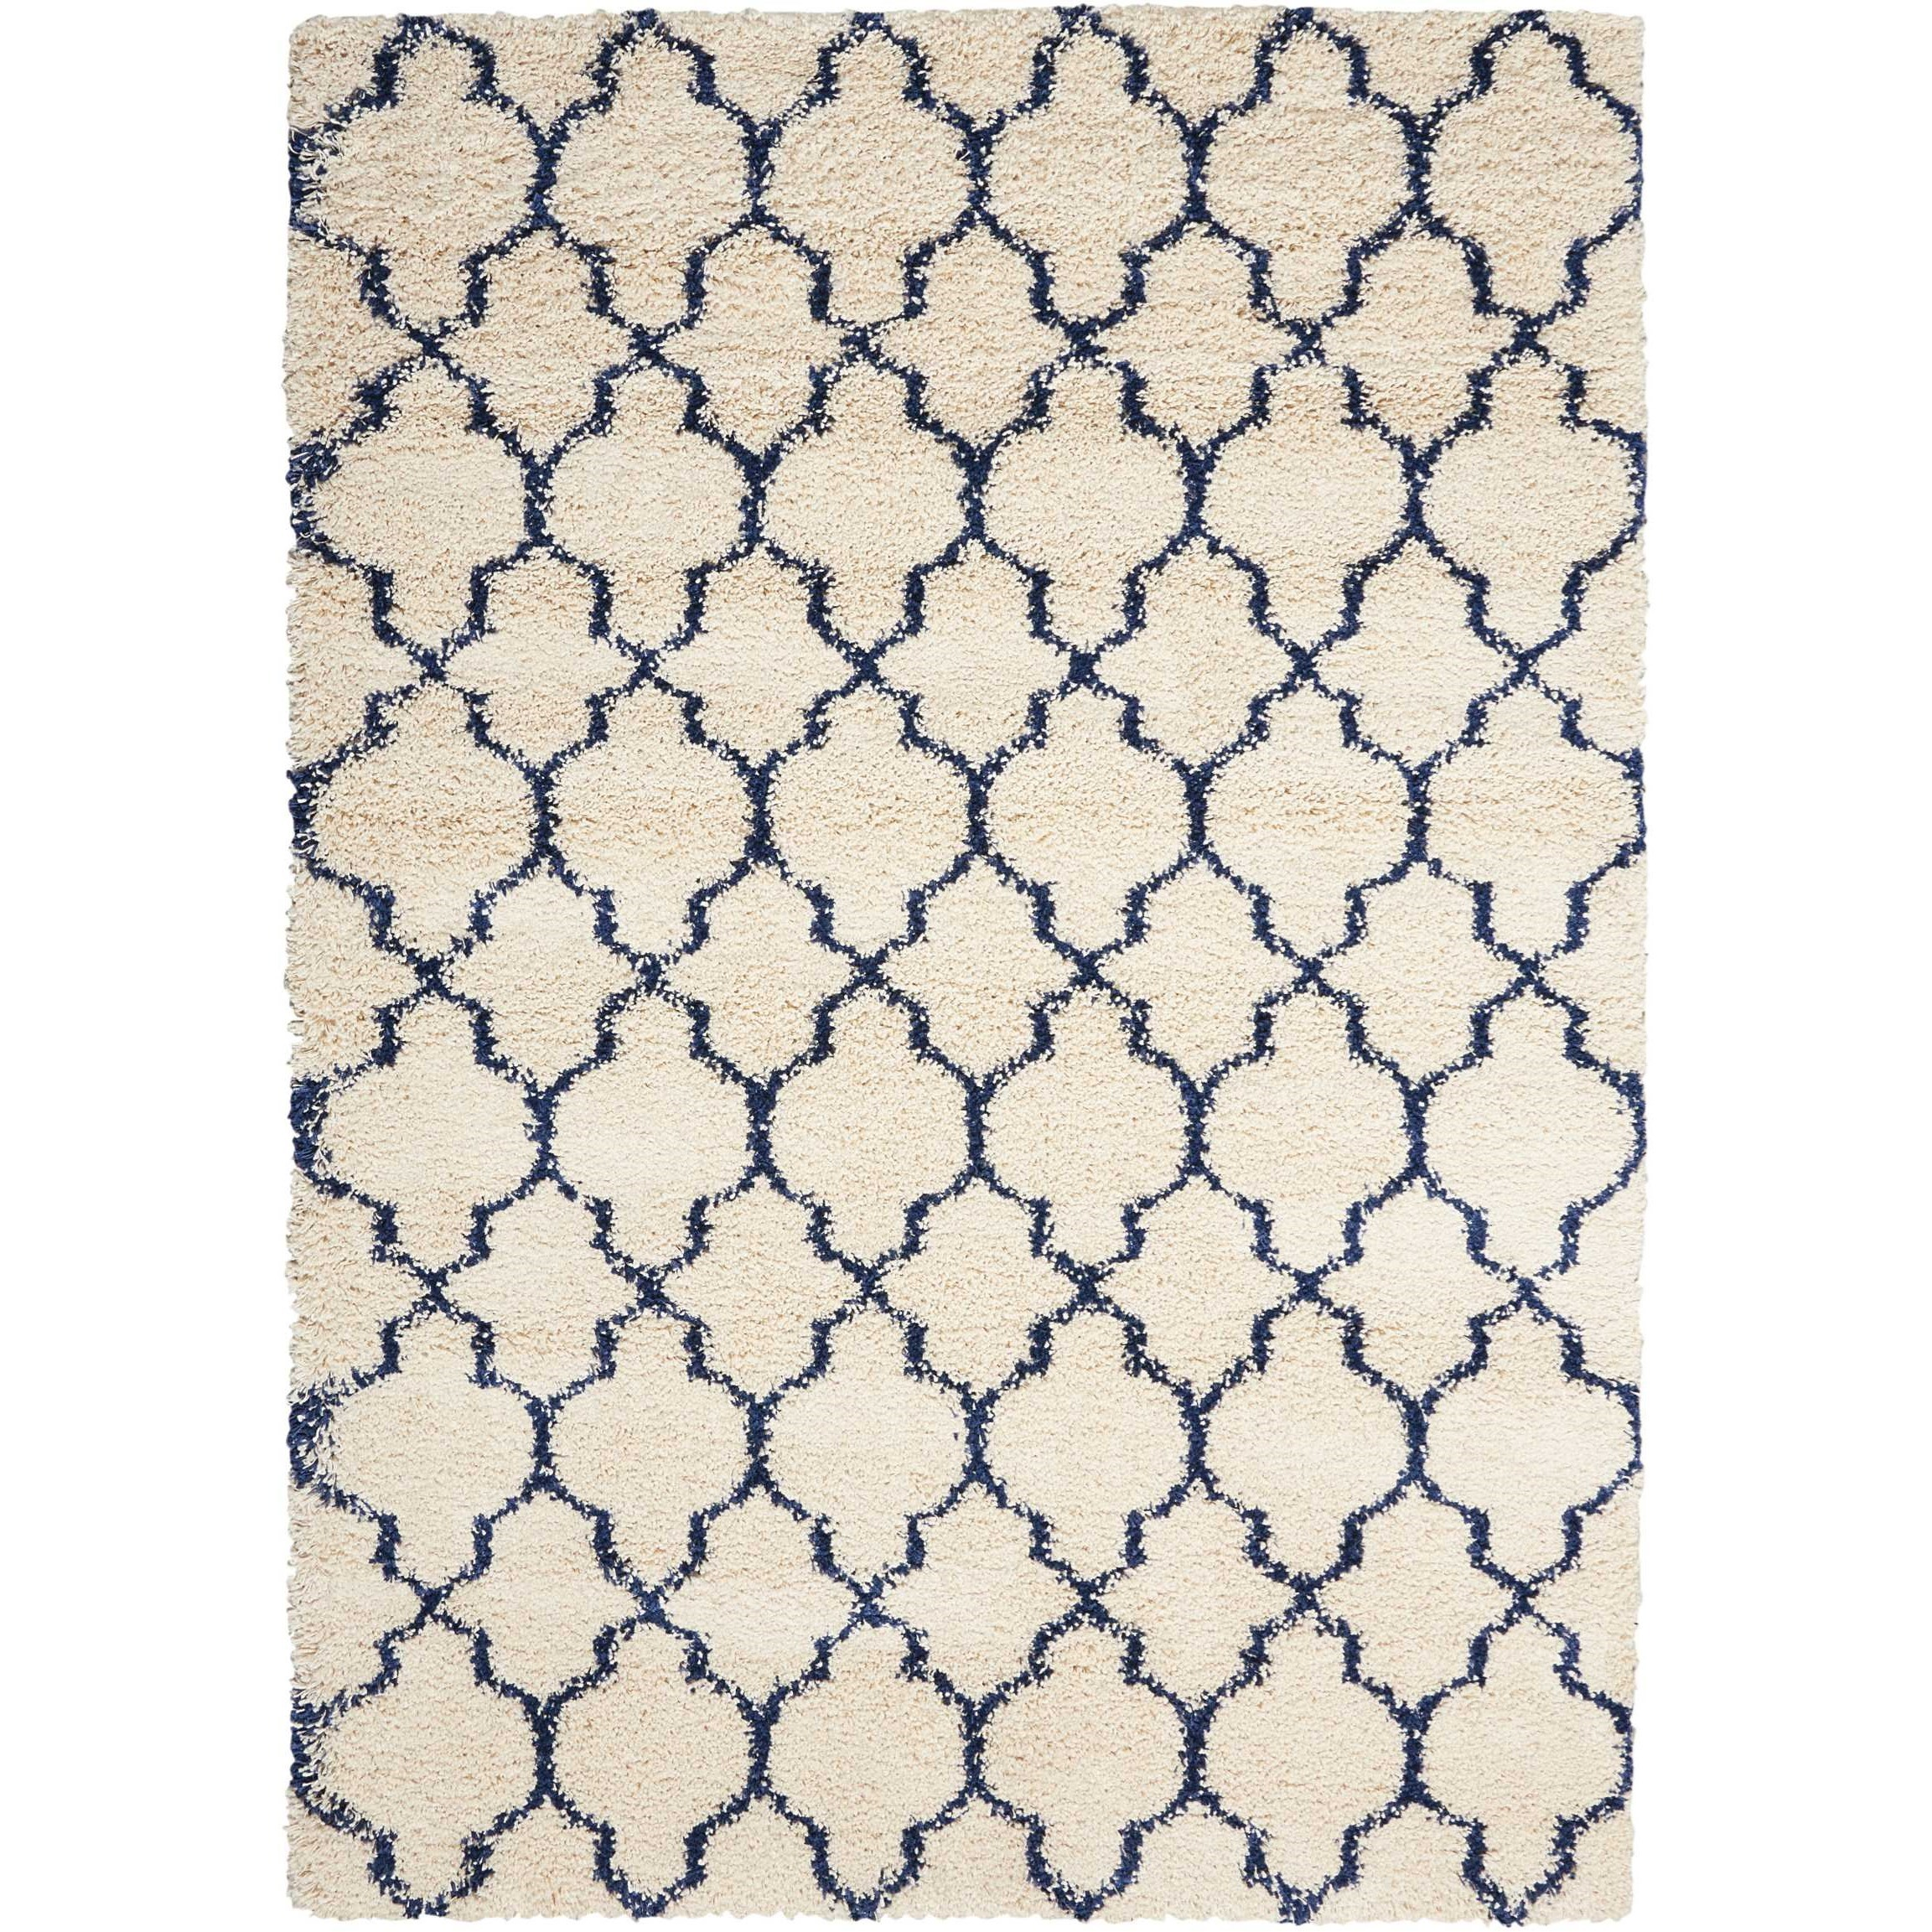 Amore Amore AMOR2 Blue and Ivory 10'x13'   Rug by Nourison at Home Collections Furniture